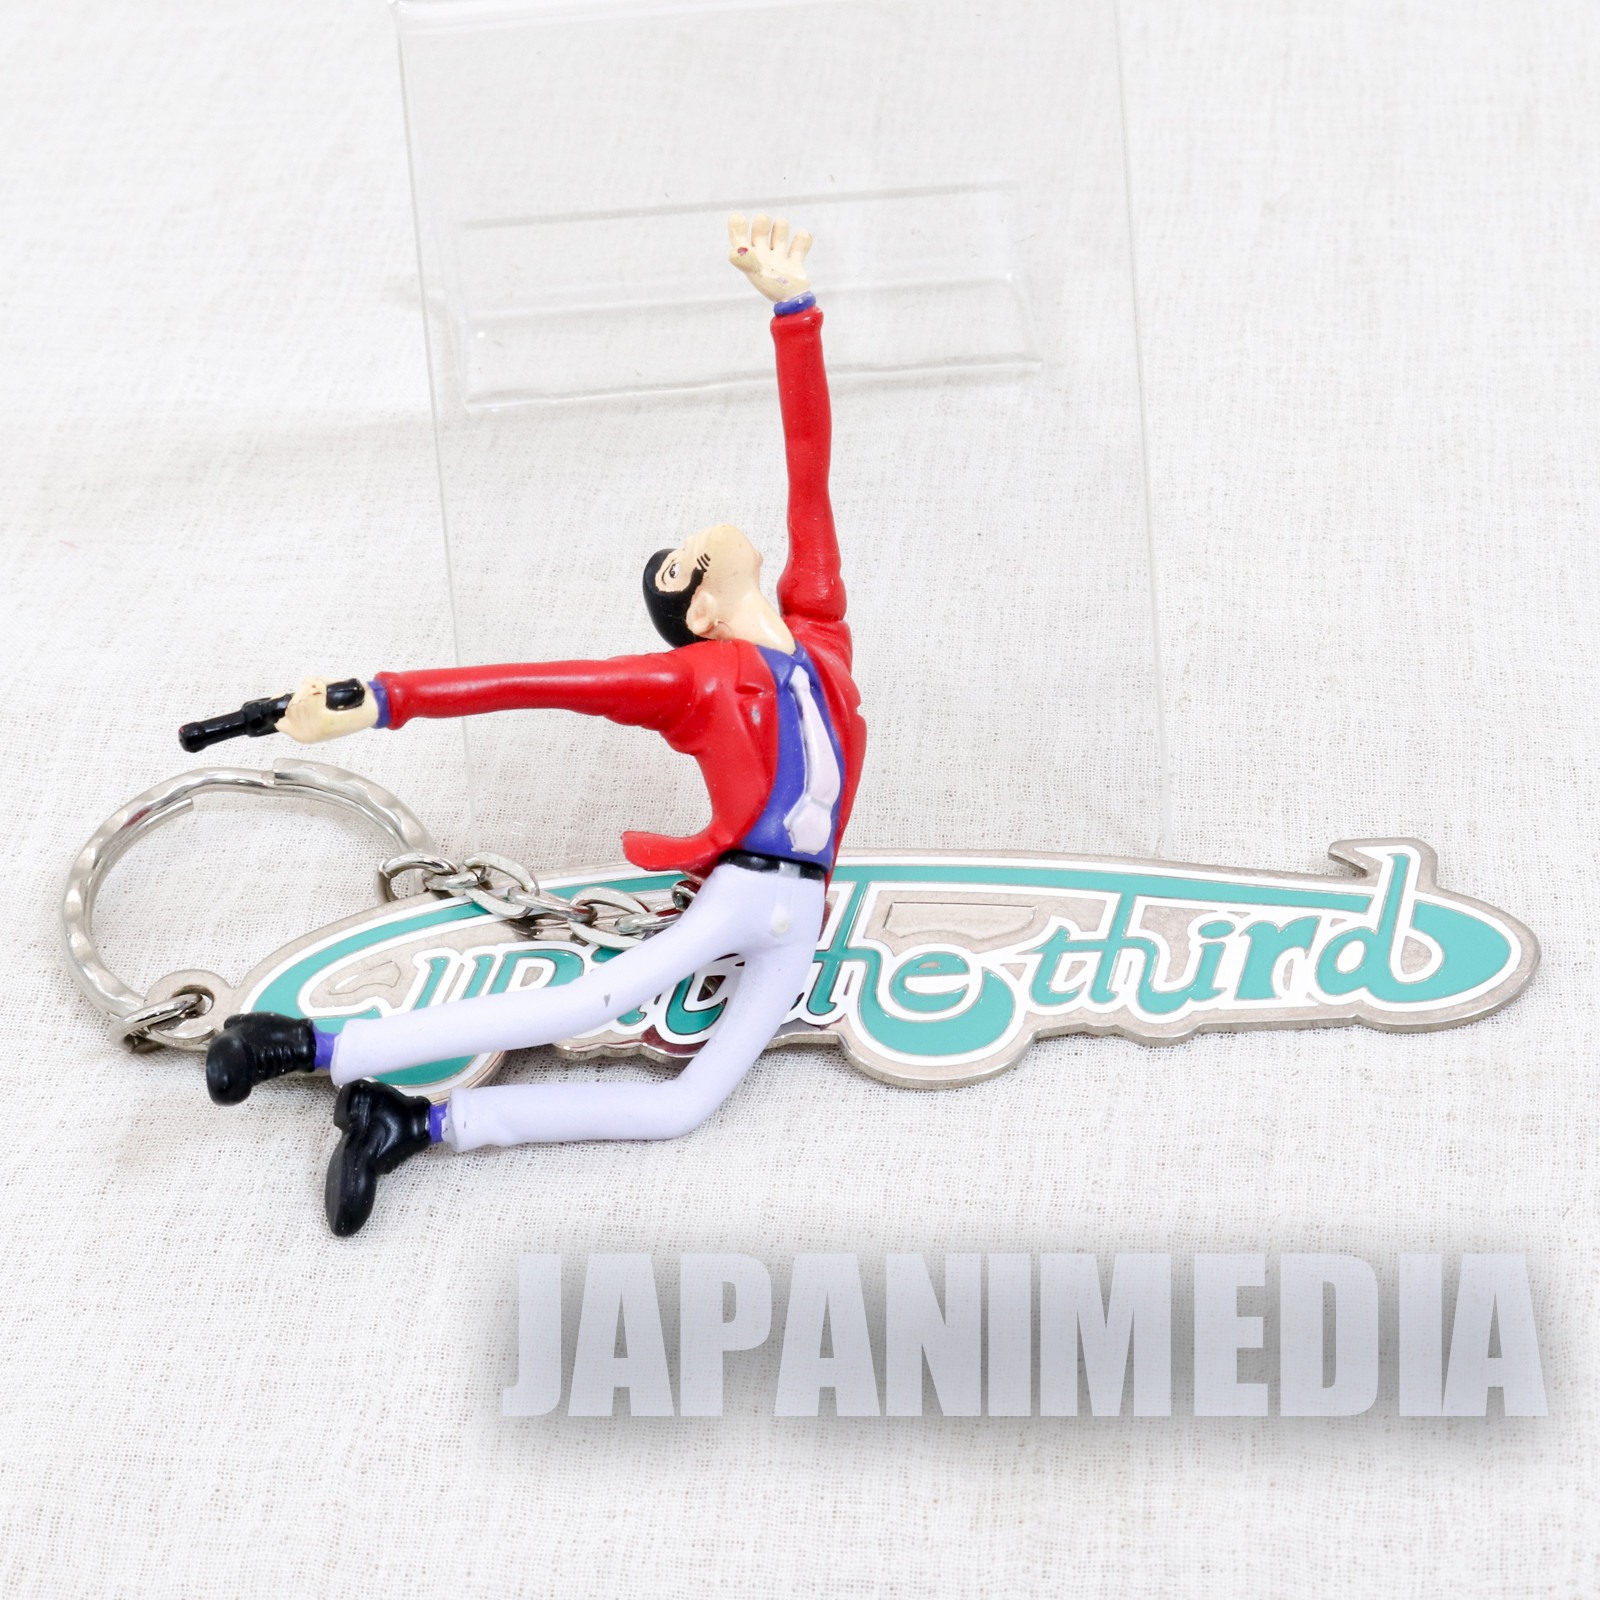 Lupin the Third (3rd) LUPIN & Metal Plate Figure Keychain JAPAN ANIME2